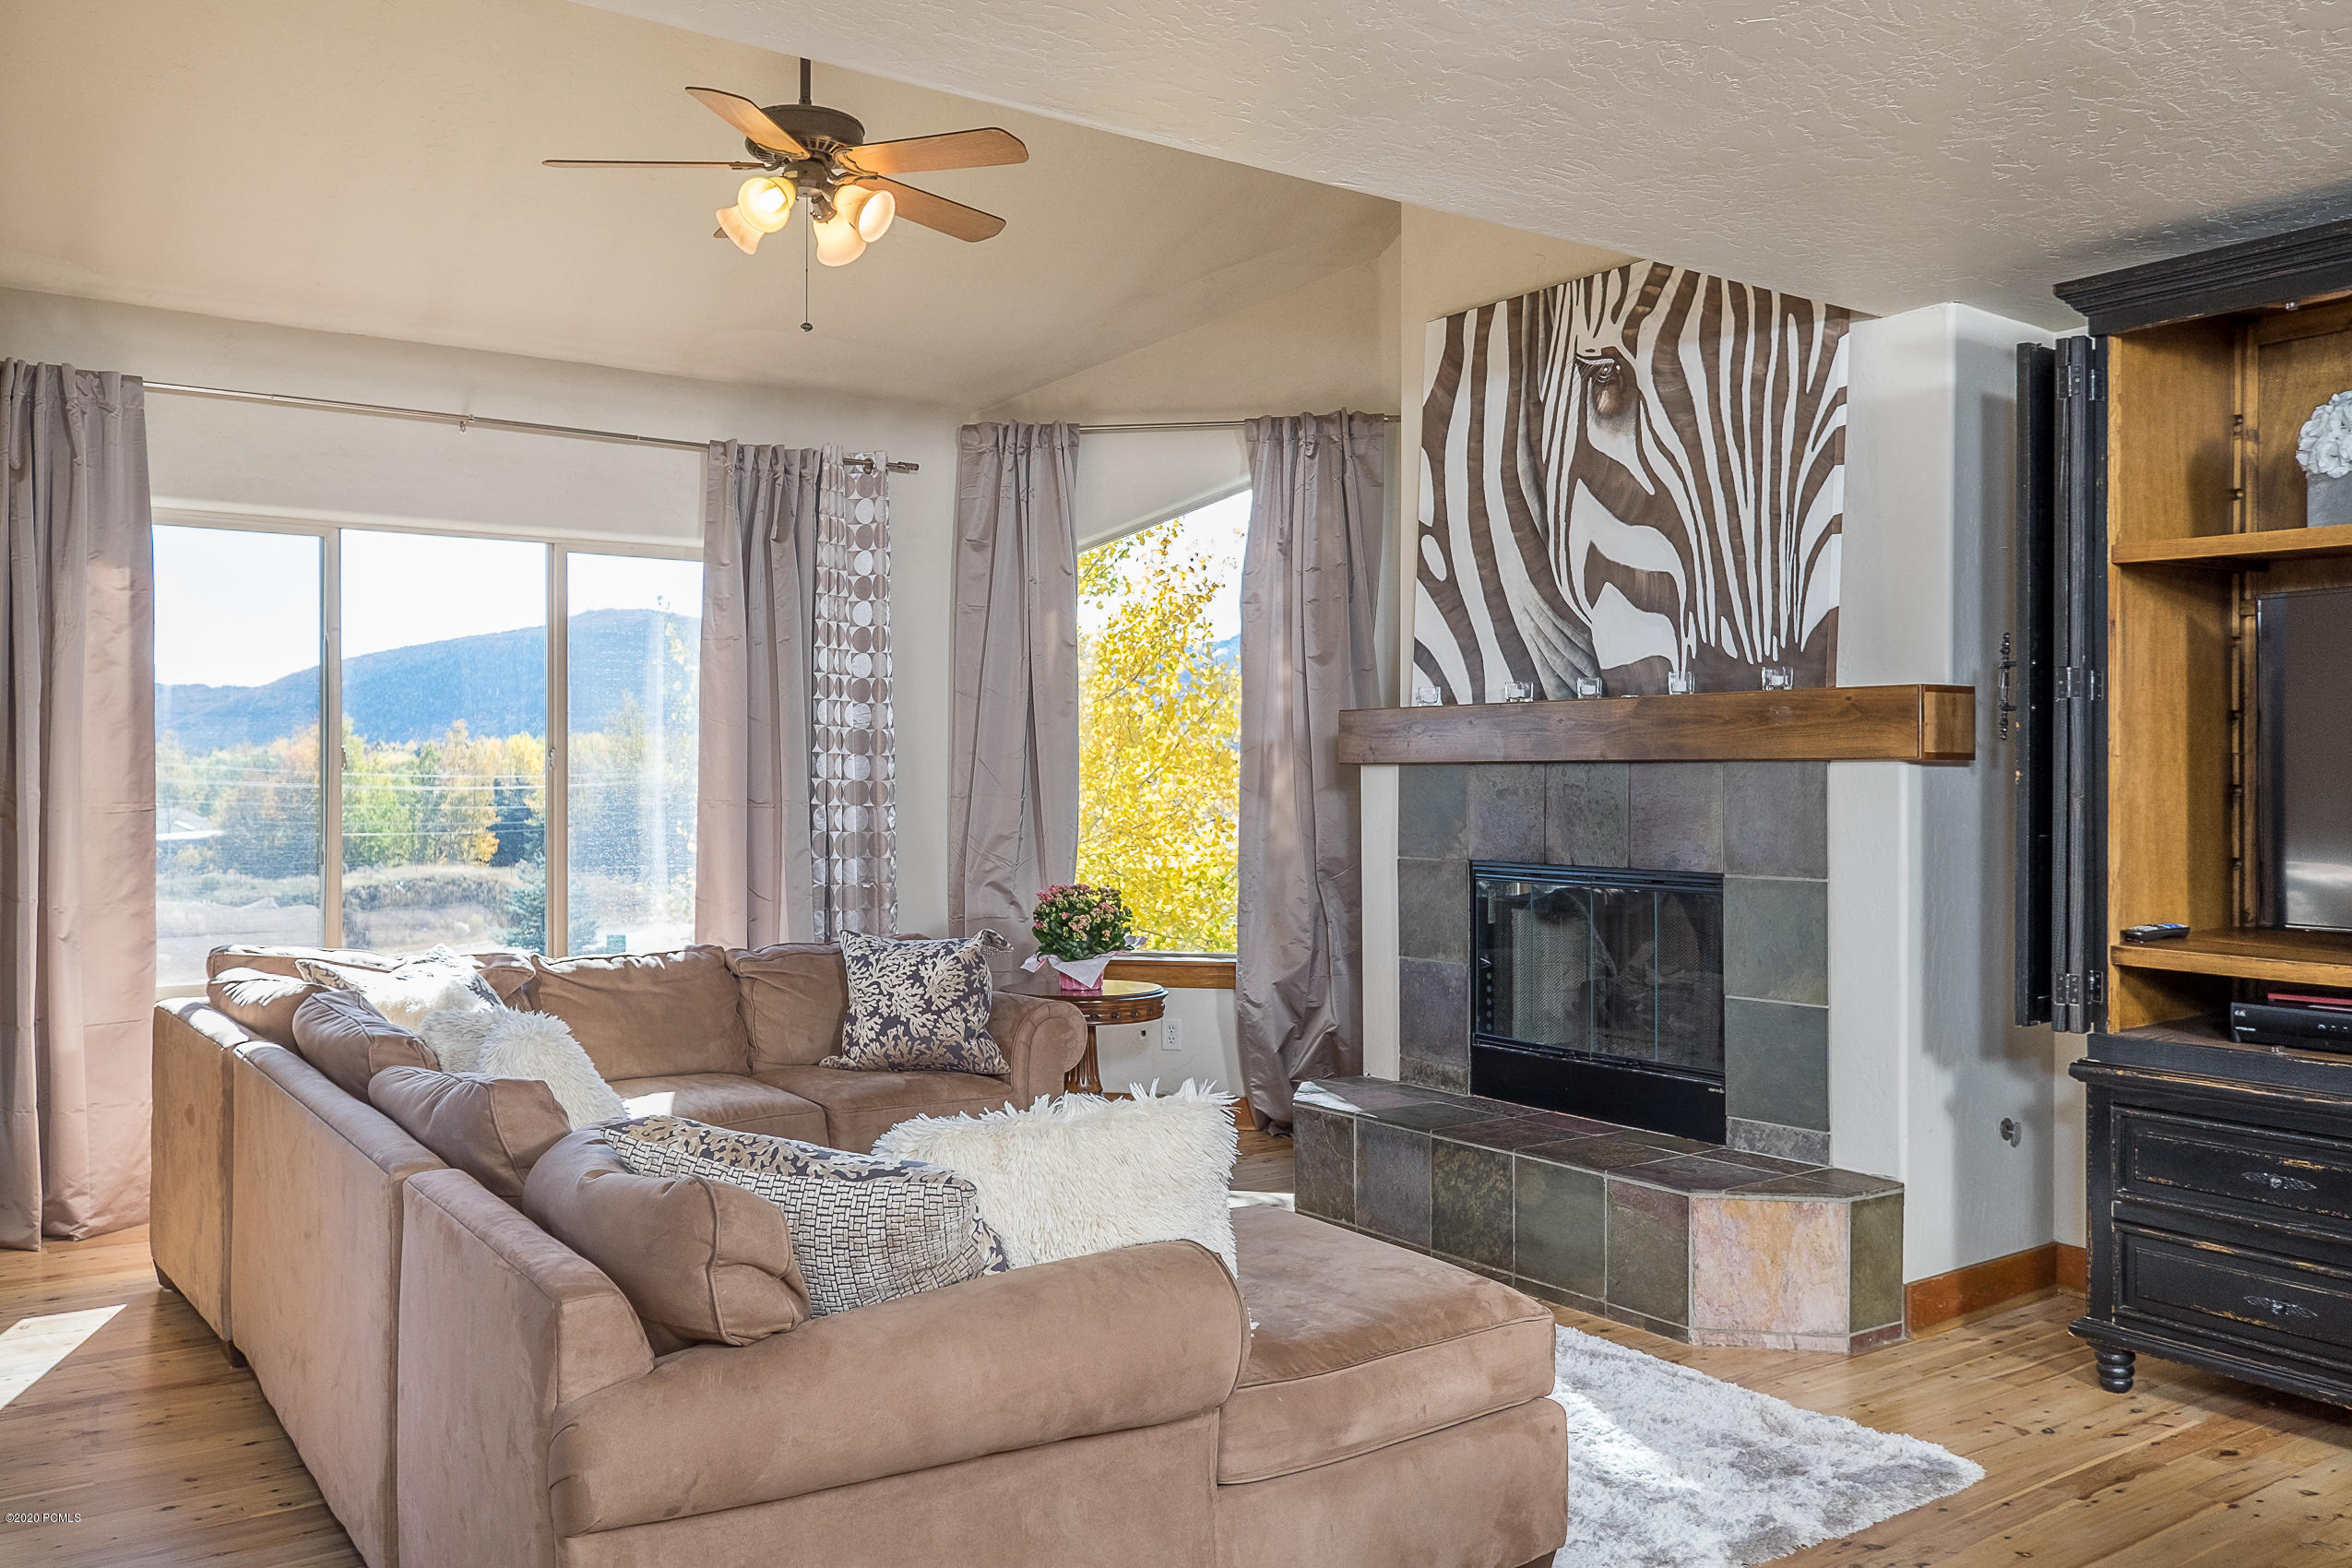 5241 Cove Canyon Drive, Park City, Utah 84098, 4 Bedrooms Bedrooms, ,3 BathroomsBathrooms,Condominium,For Sale,Cove Canyon,12002224